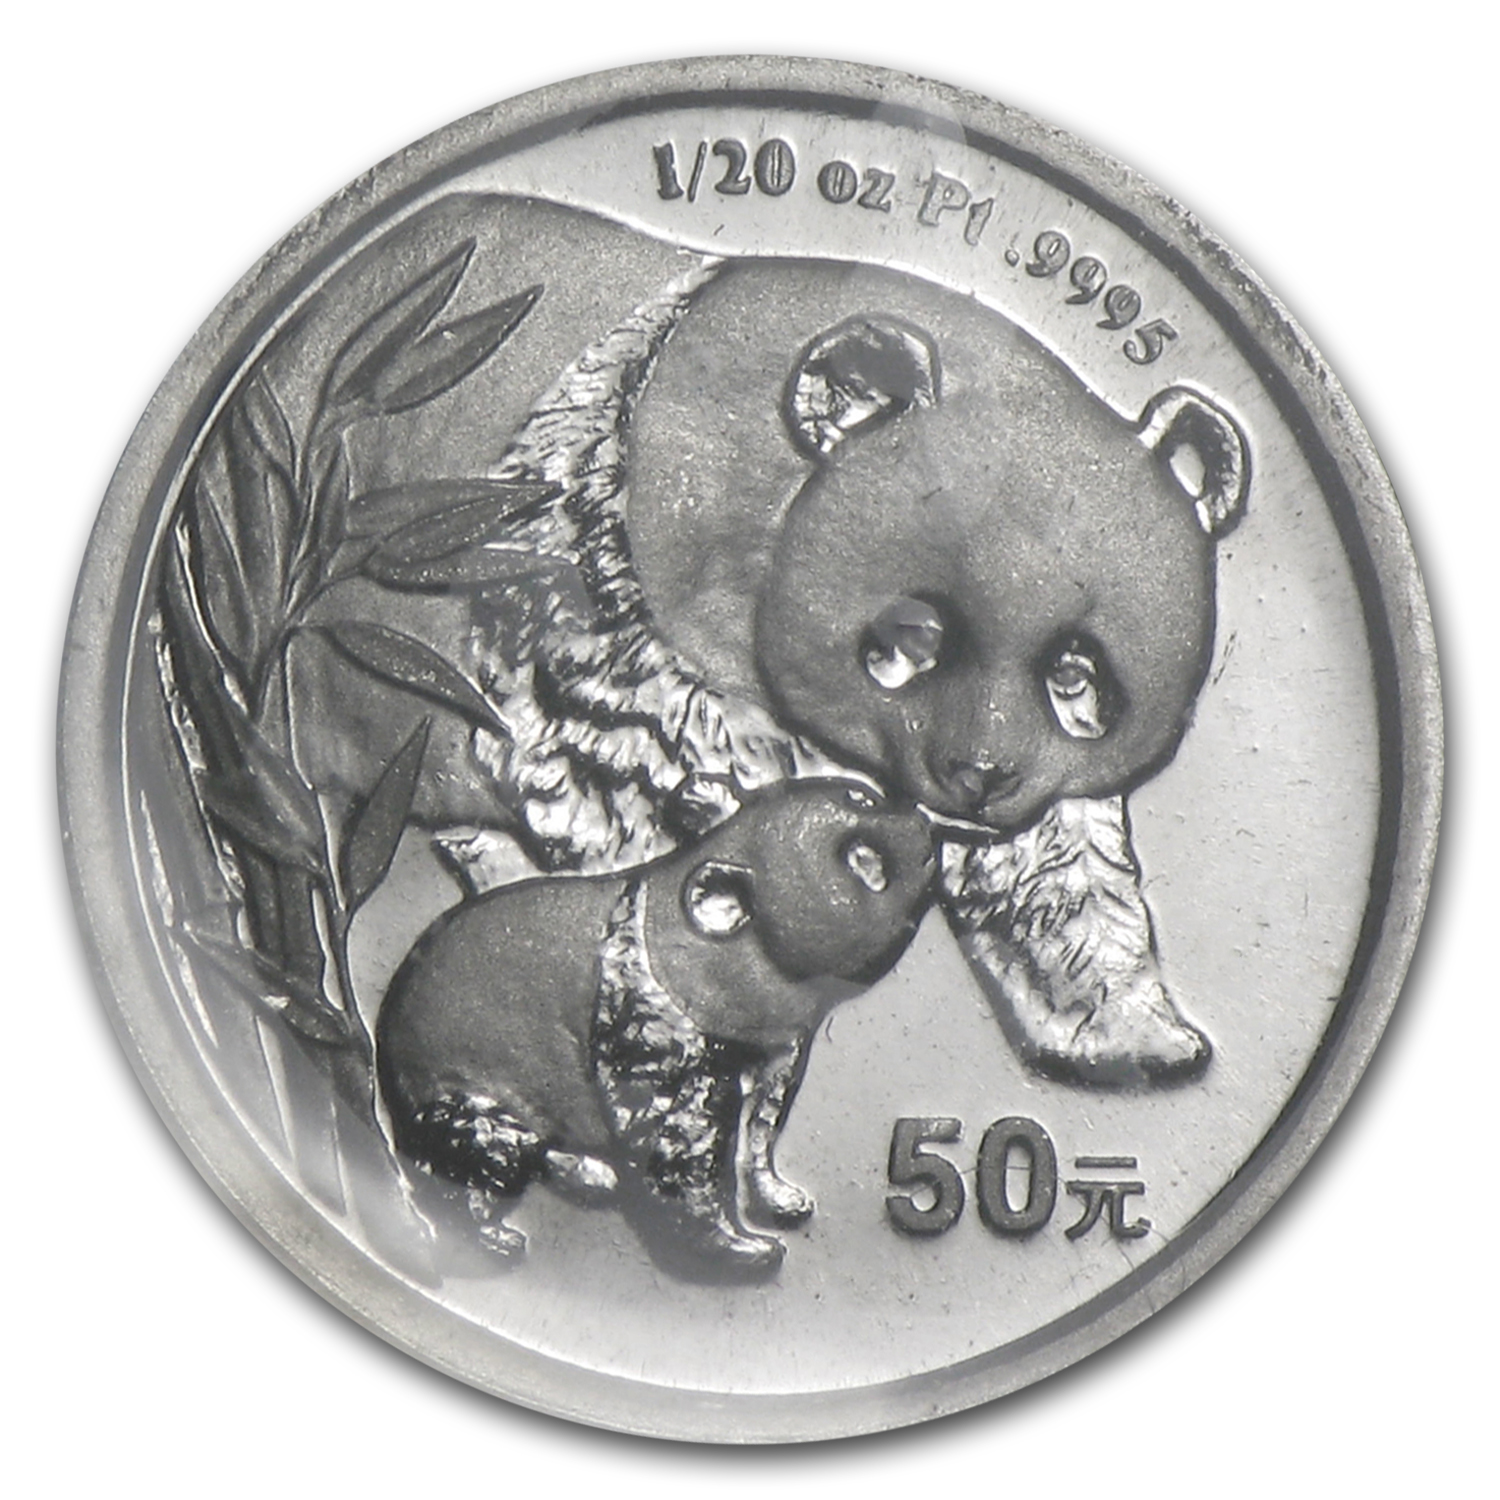 2004 1/20 oz Platinum Chinese Panda BU (Sealed)